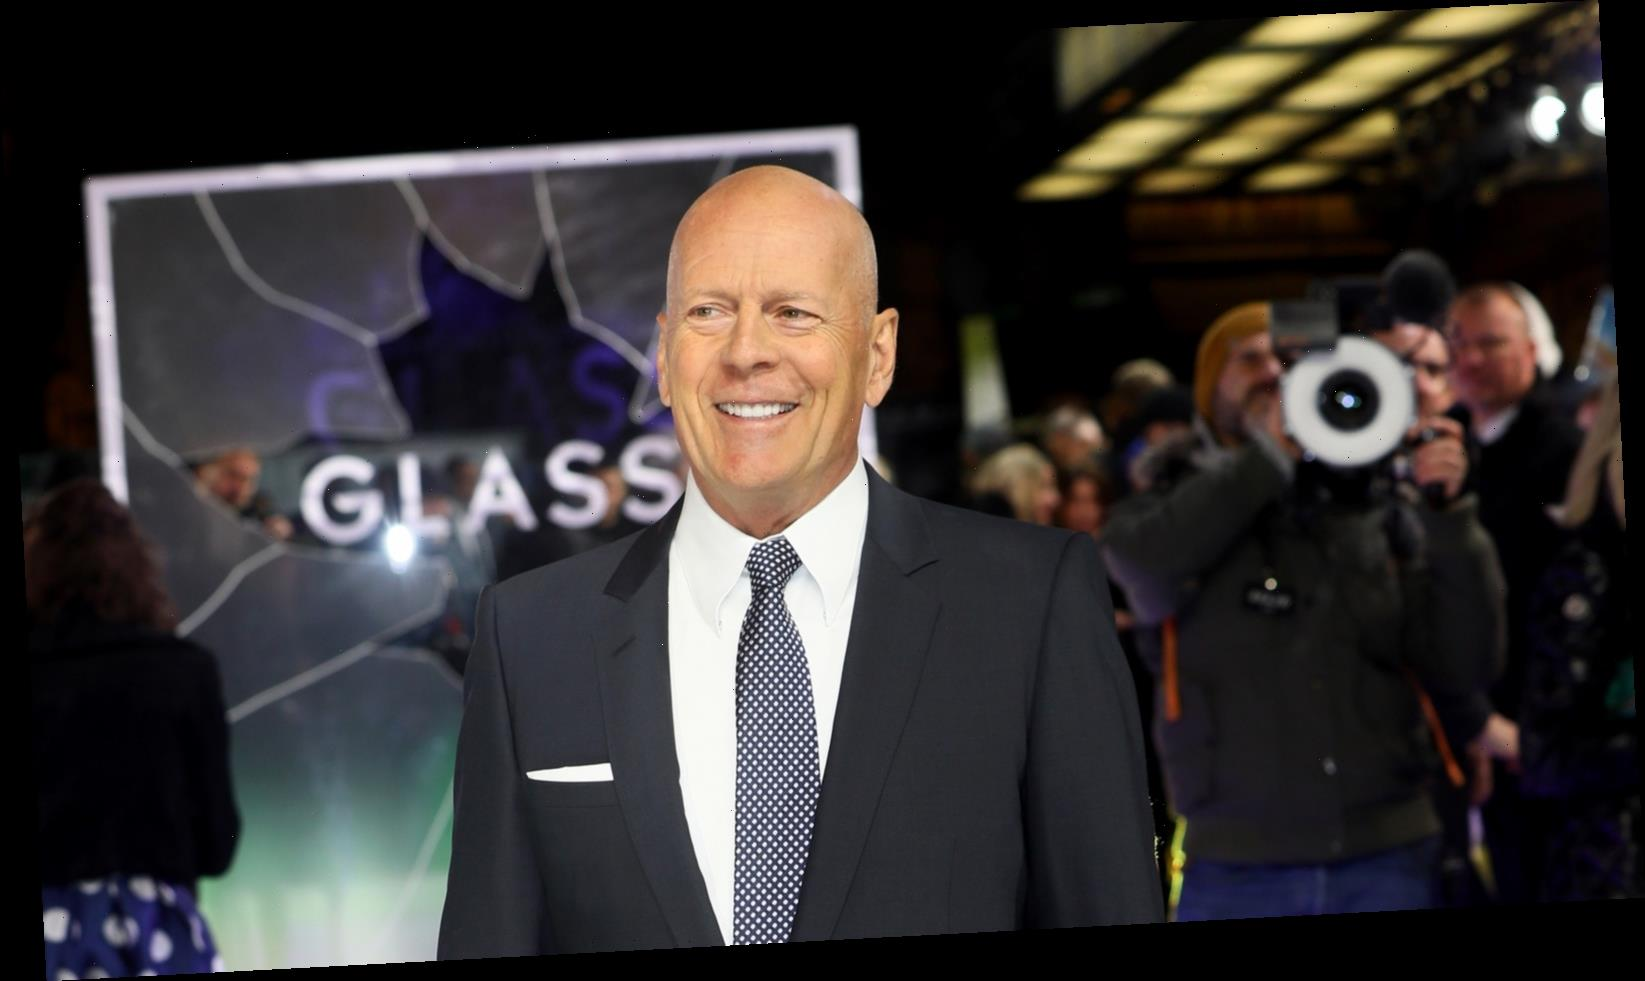 The Real Reason Bruce Willis Was Asked To Leave A Store